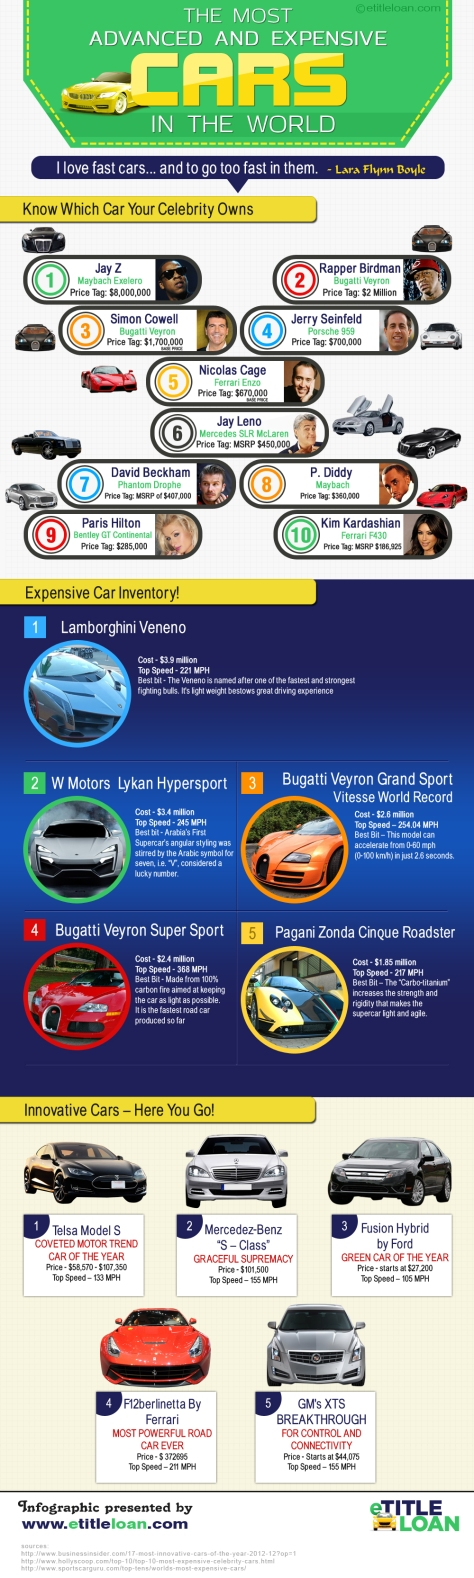 an-infographics-on-most-advanced-and-expensive-cars-in-the-world_52567b6da3b03